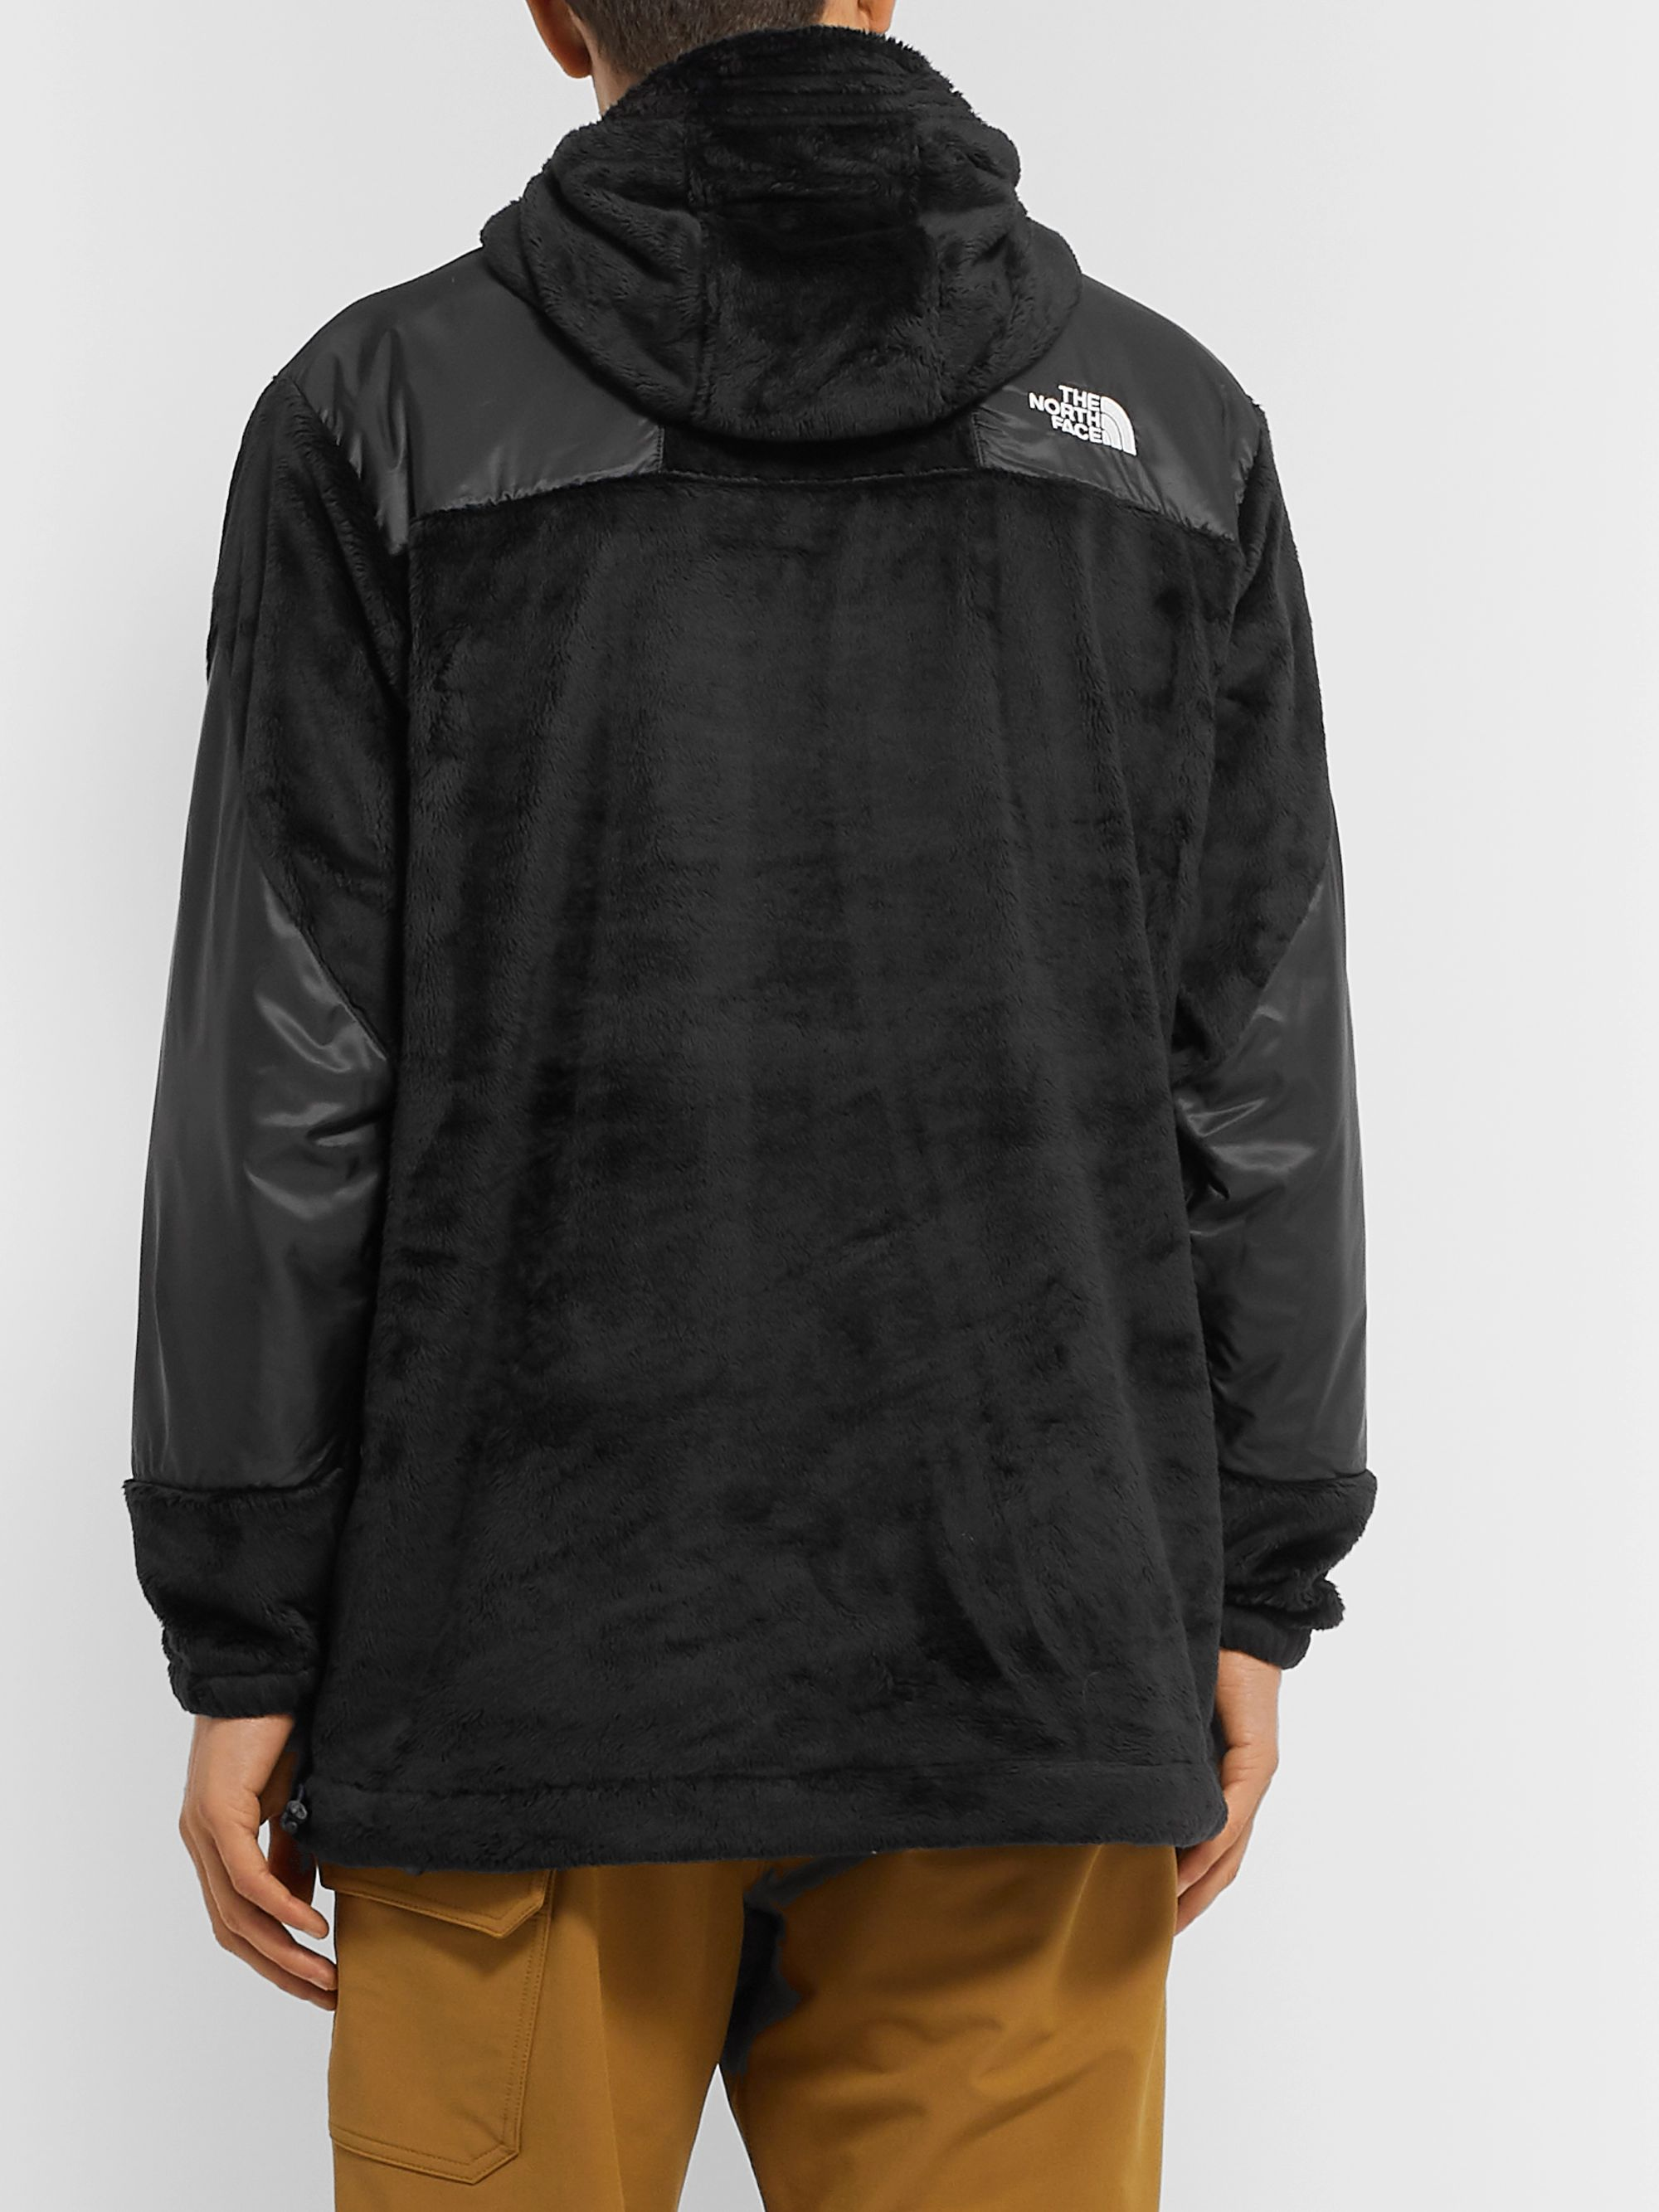 The North Face Black Series Shell-Trimmed Fleece Jacket